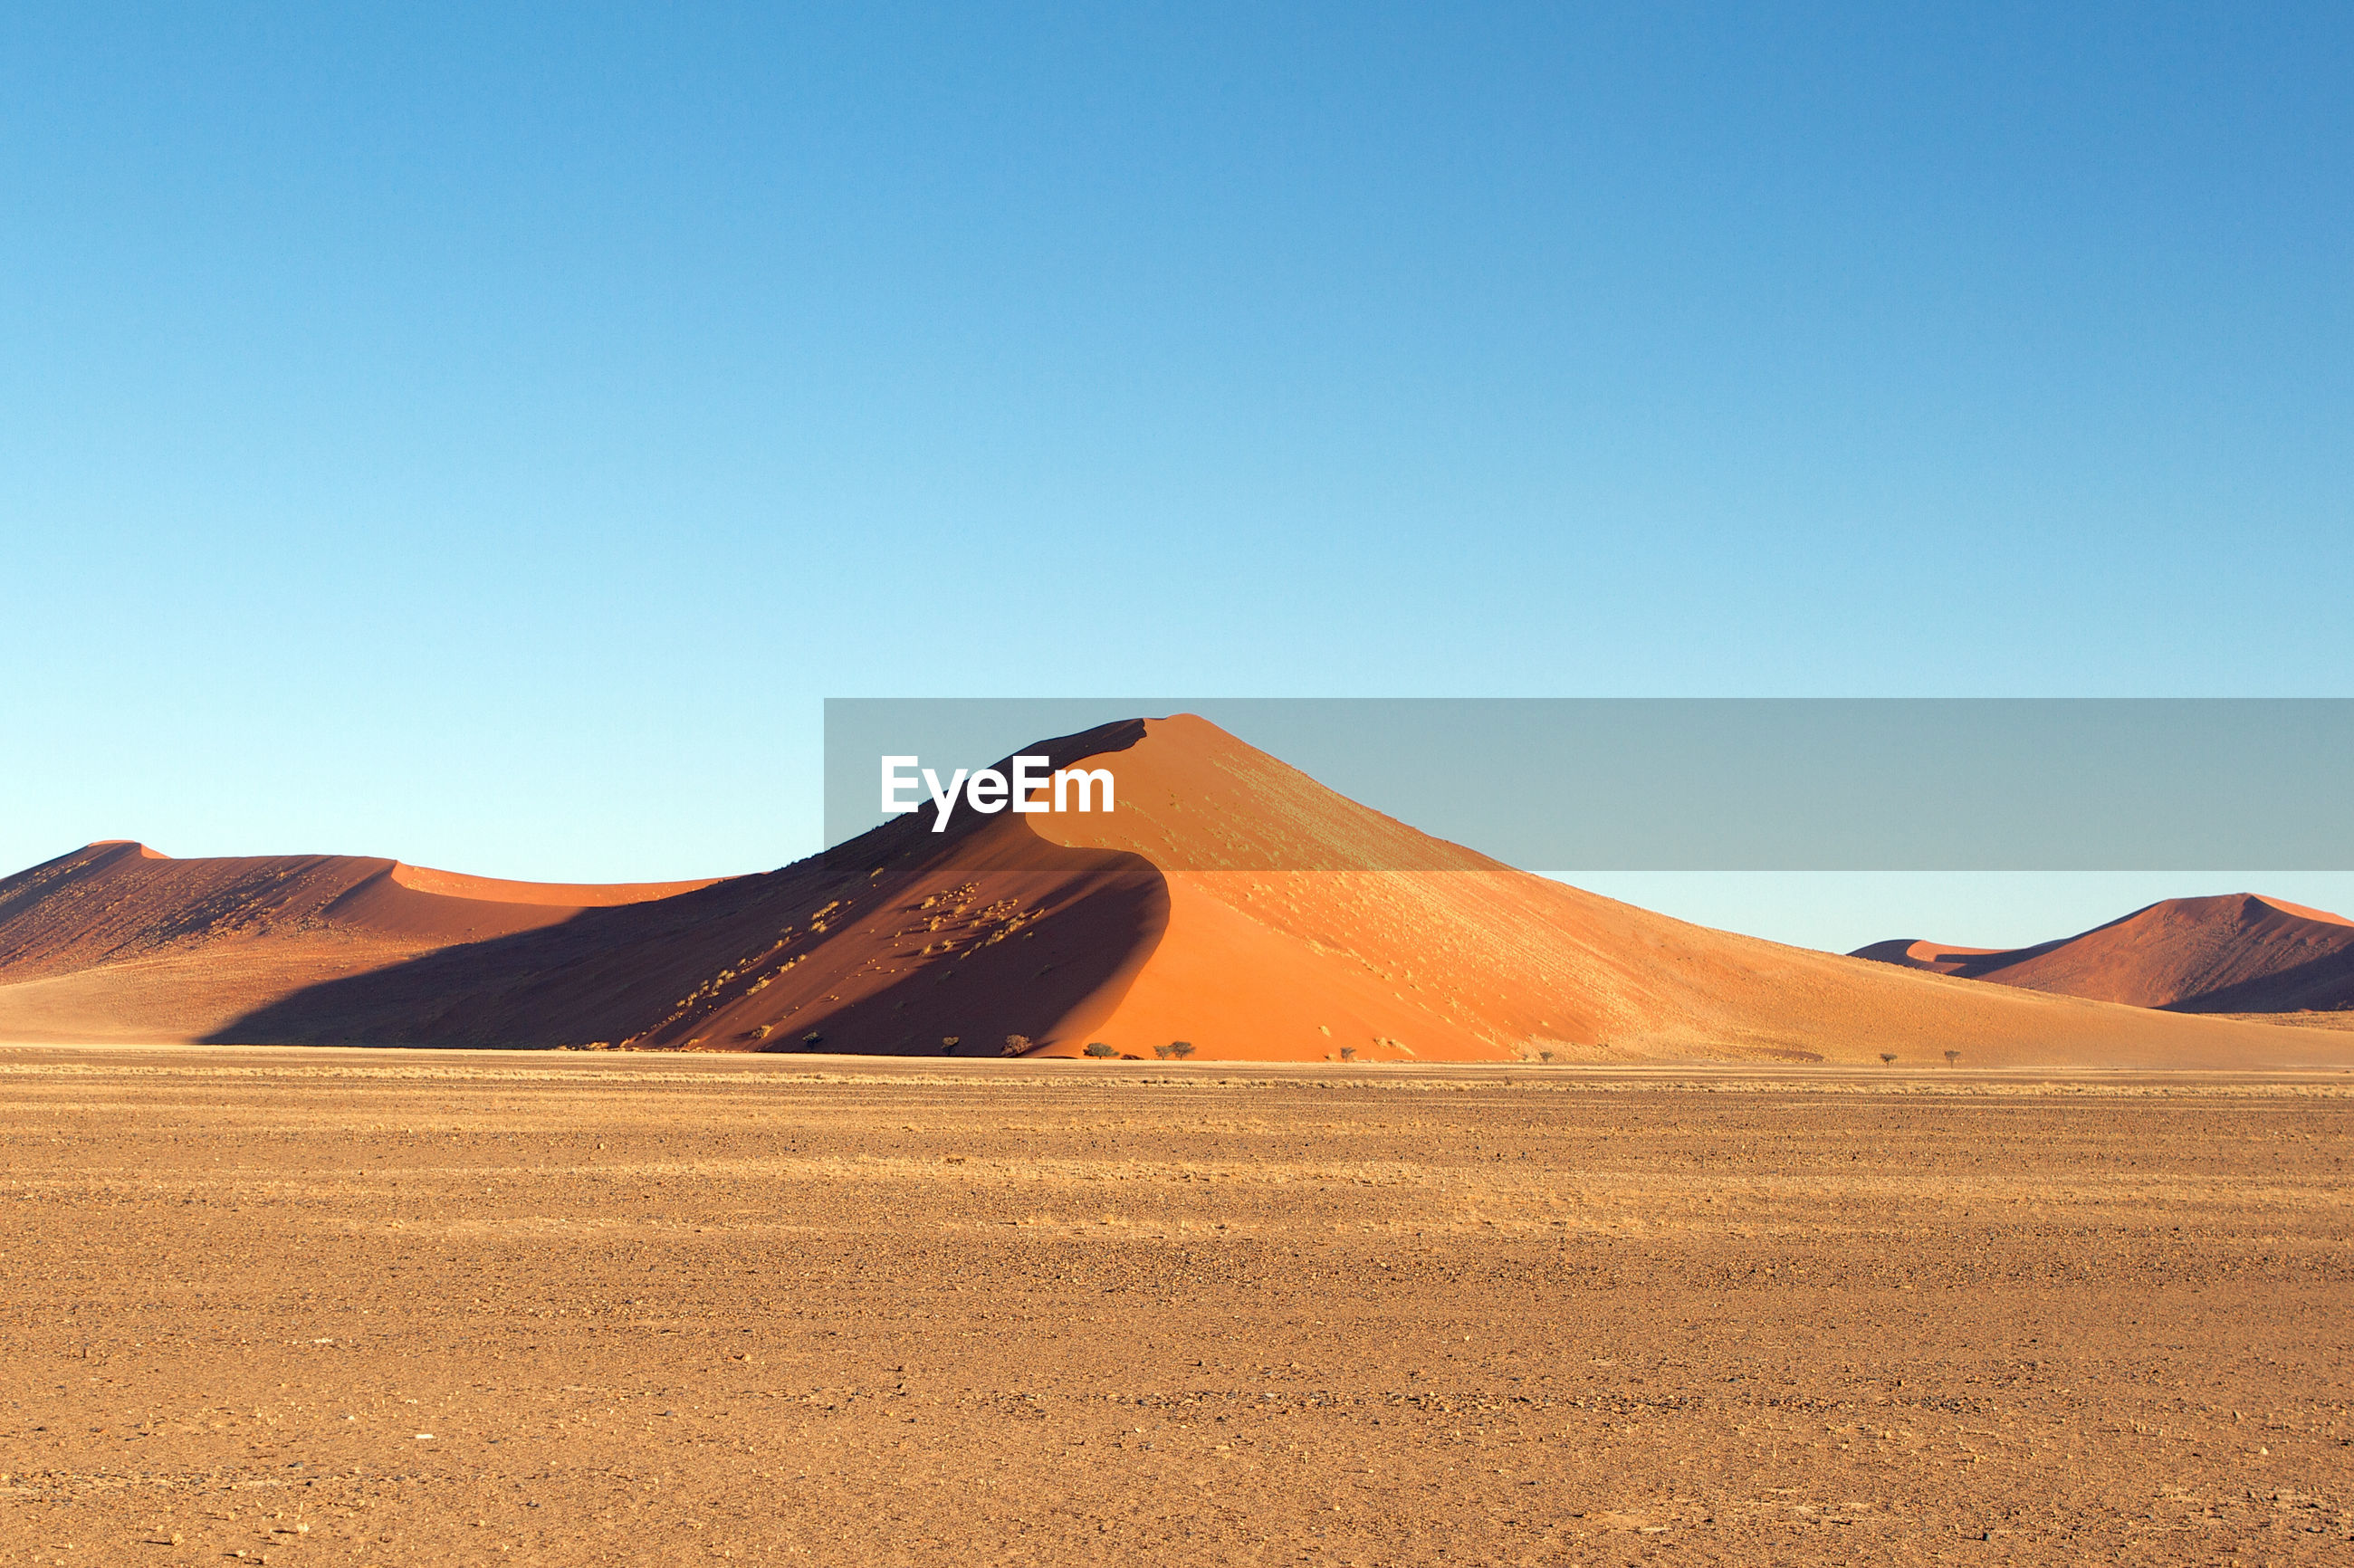 SCENIC VIEW OF DESERT LAND AGAINST CLEAR SKY